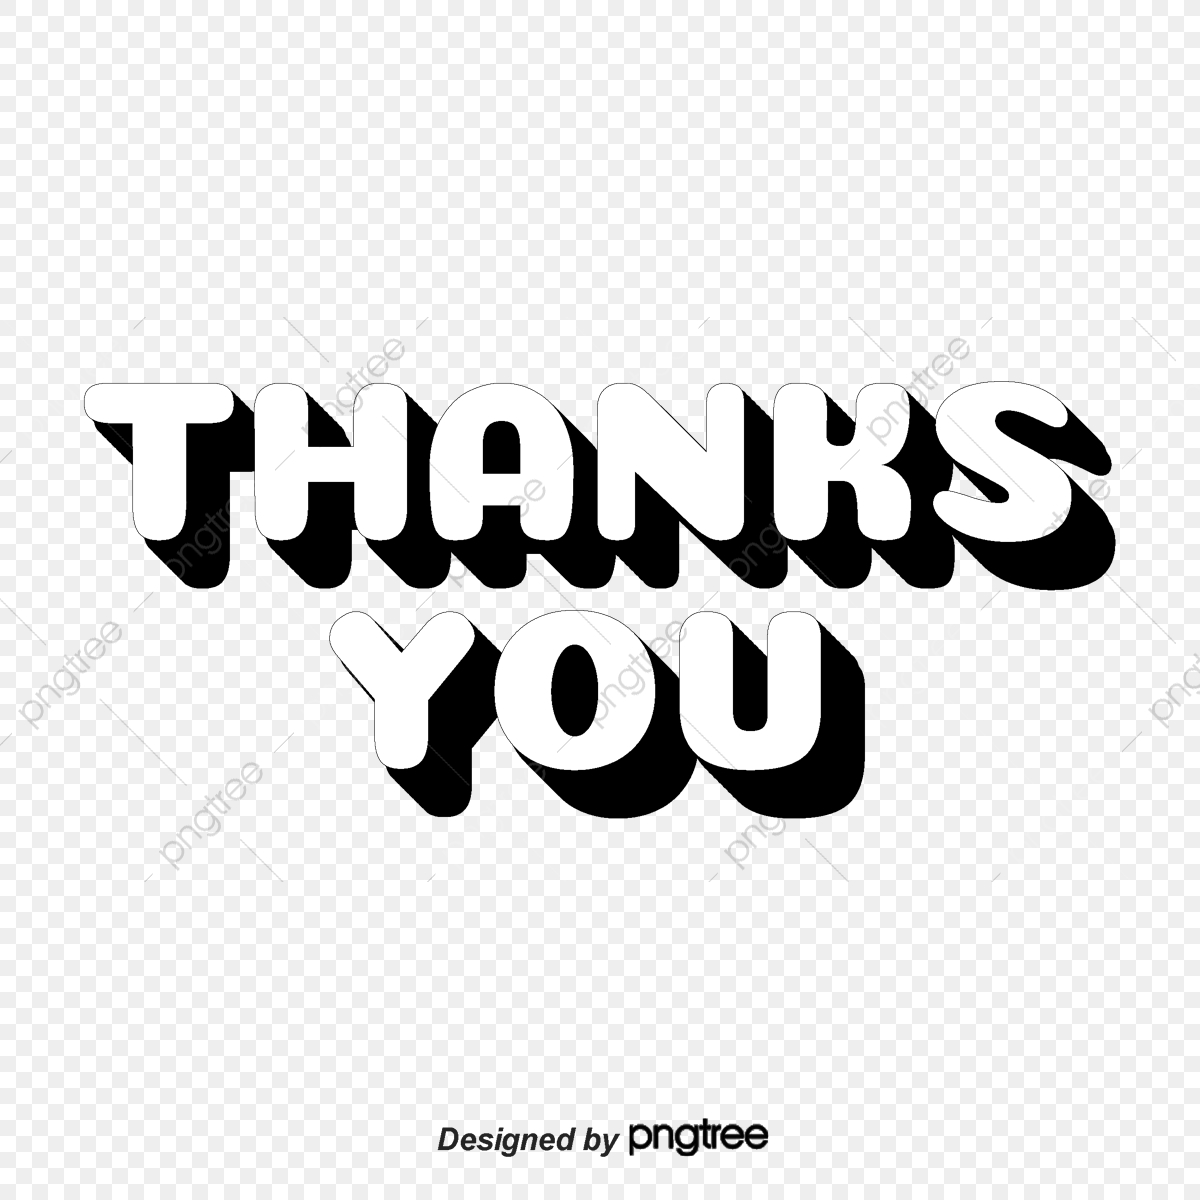 Thank You For Your Font Design Ppt Mapping Thank You Thumb Png